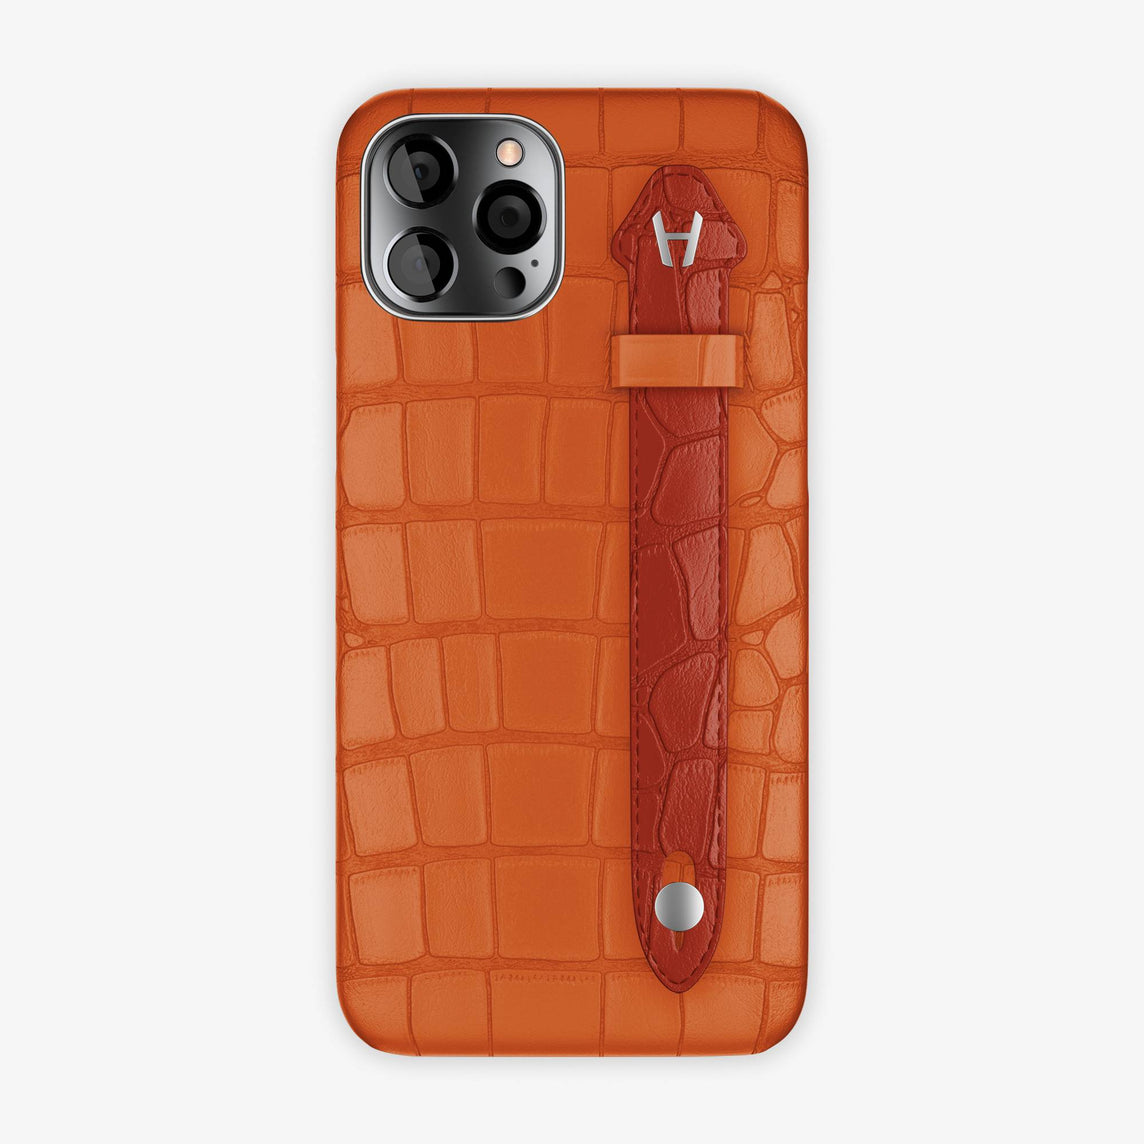 Alligator Side Finger Case iPhone 12 Pro Max | Orange Sunset/Red - Stainless-Steel